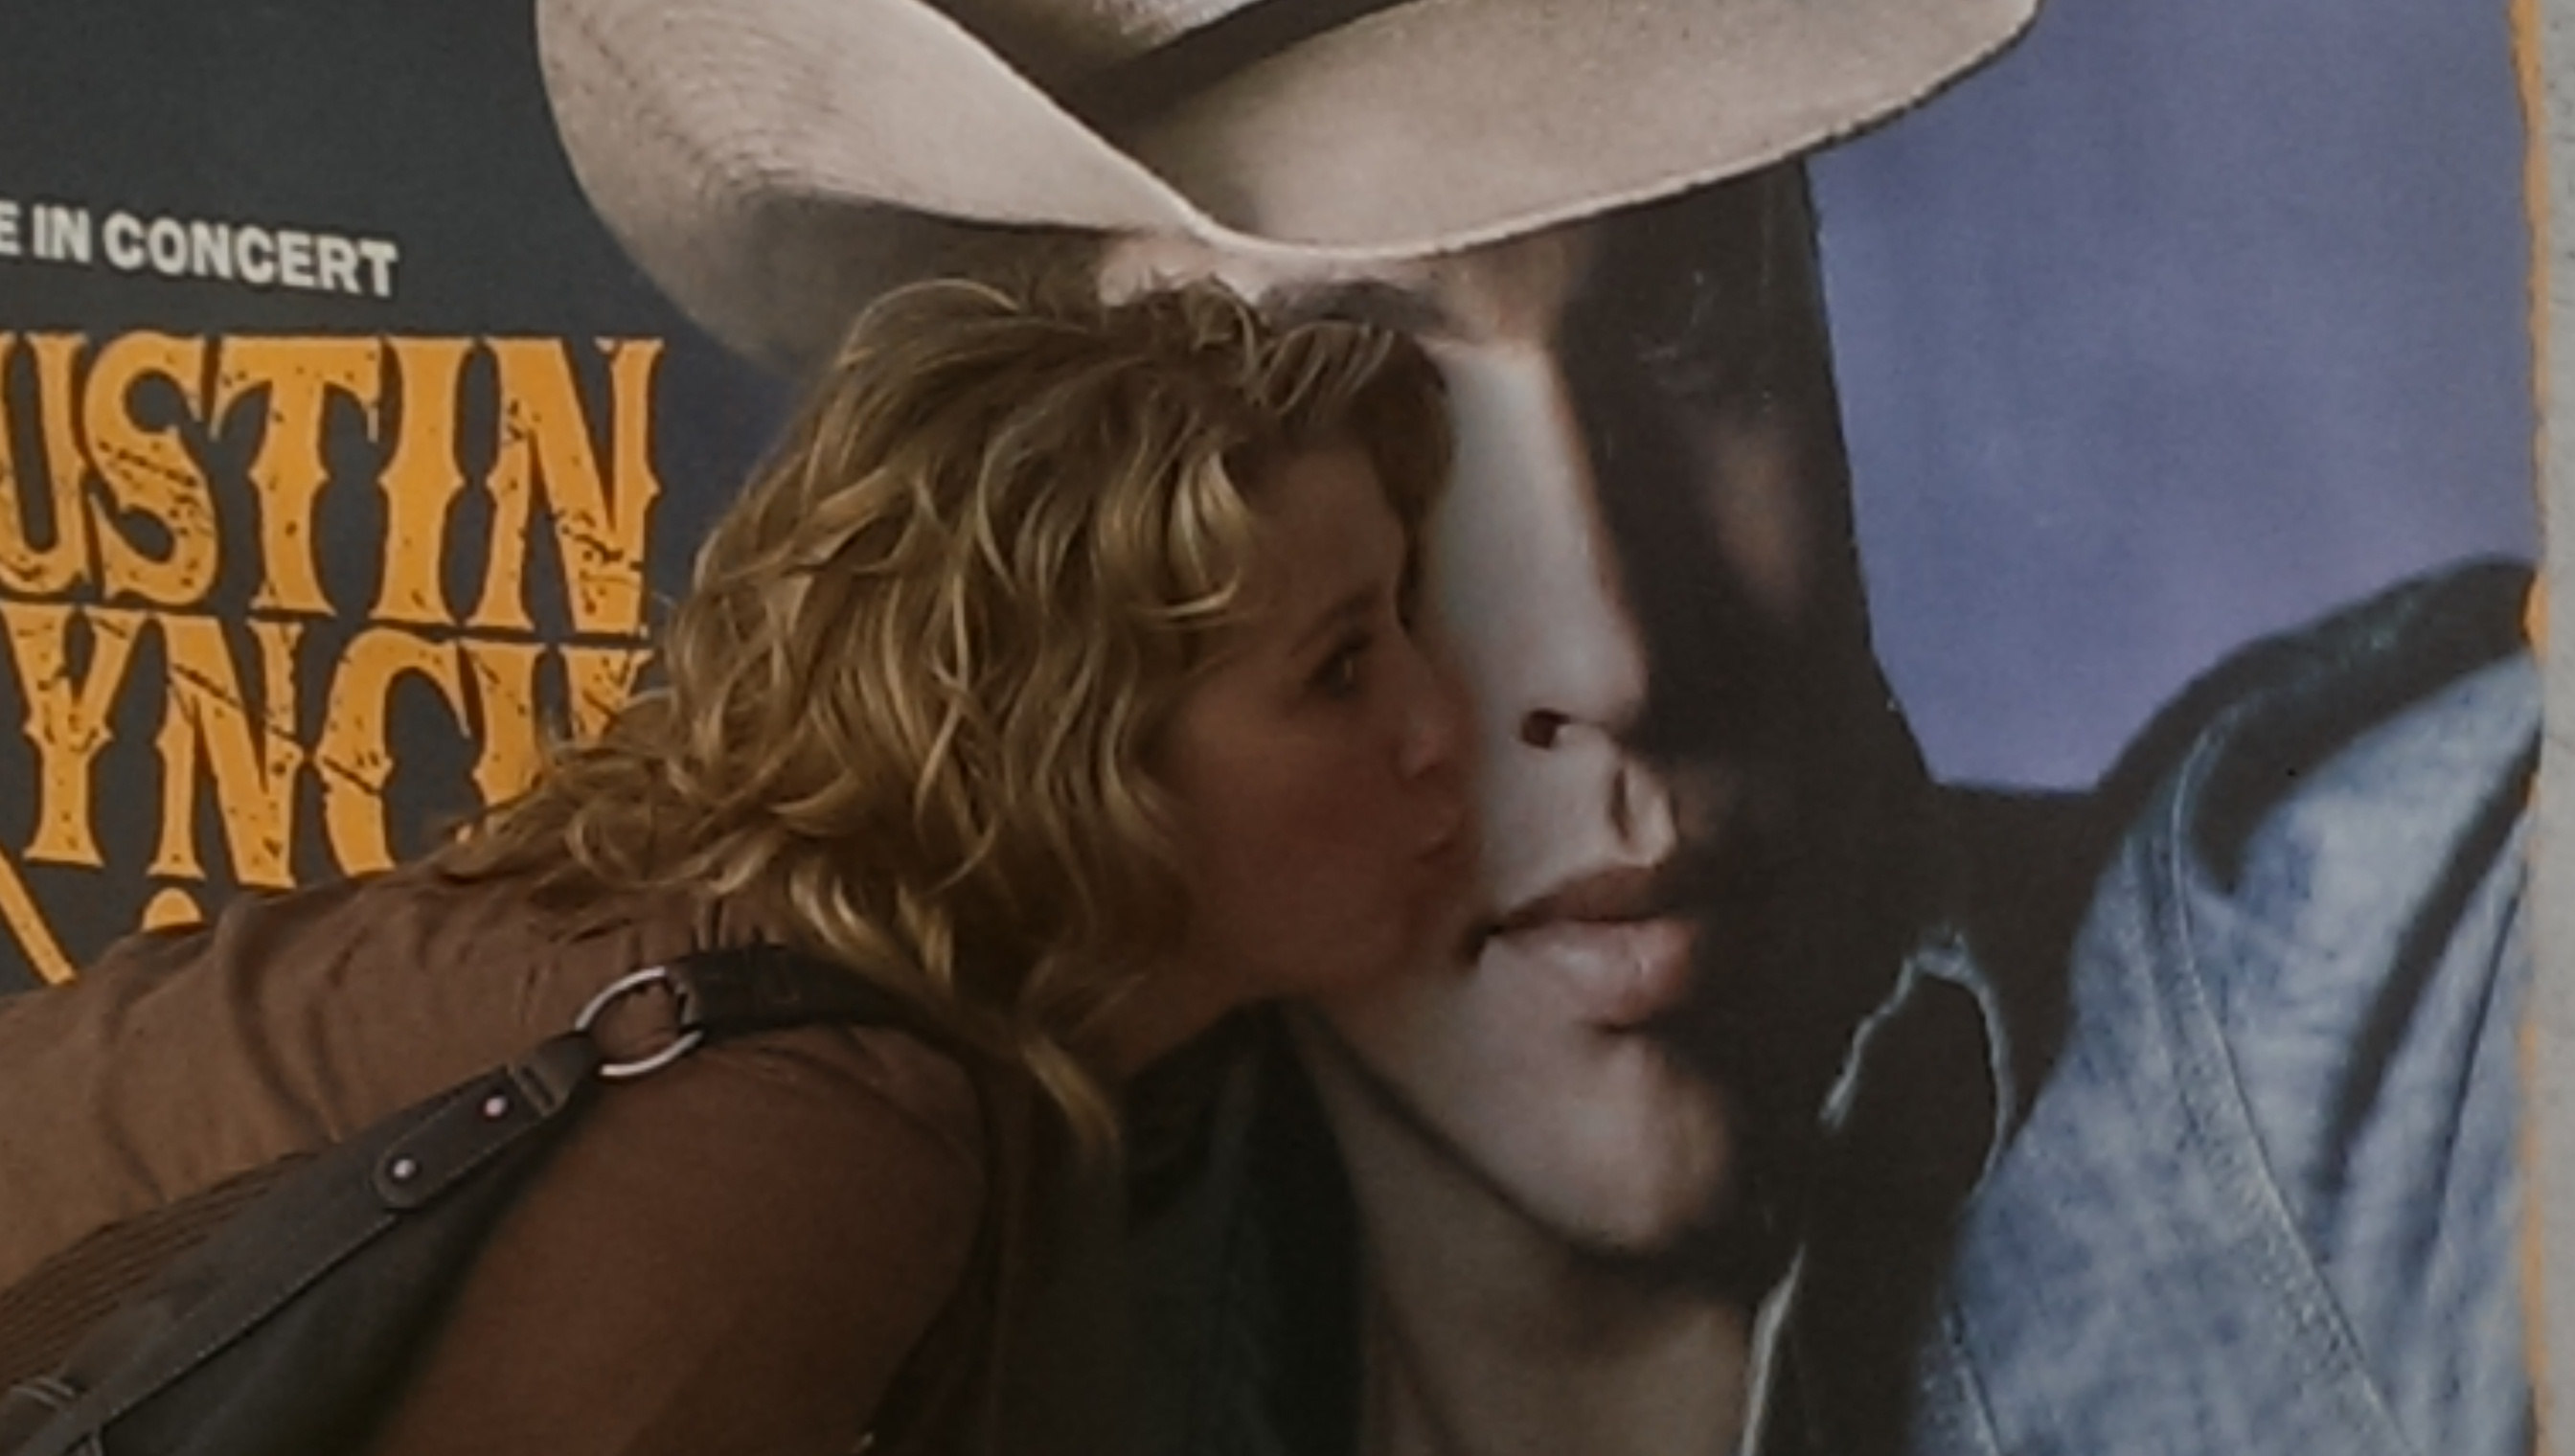 Dustin Lynch Meet Greet Photo Contest The Bluestone